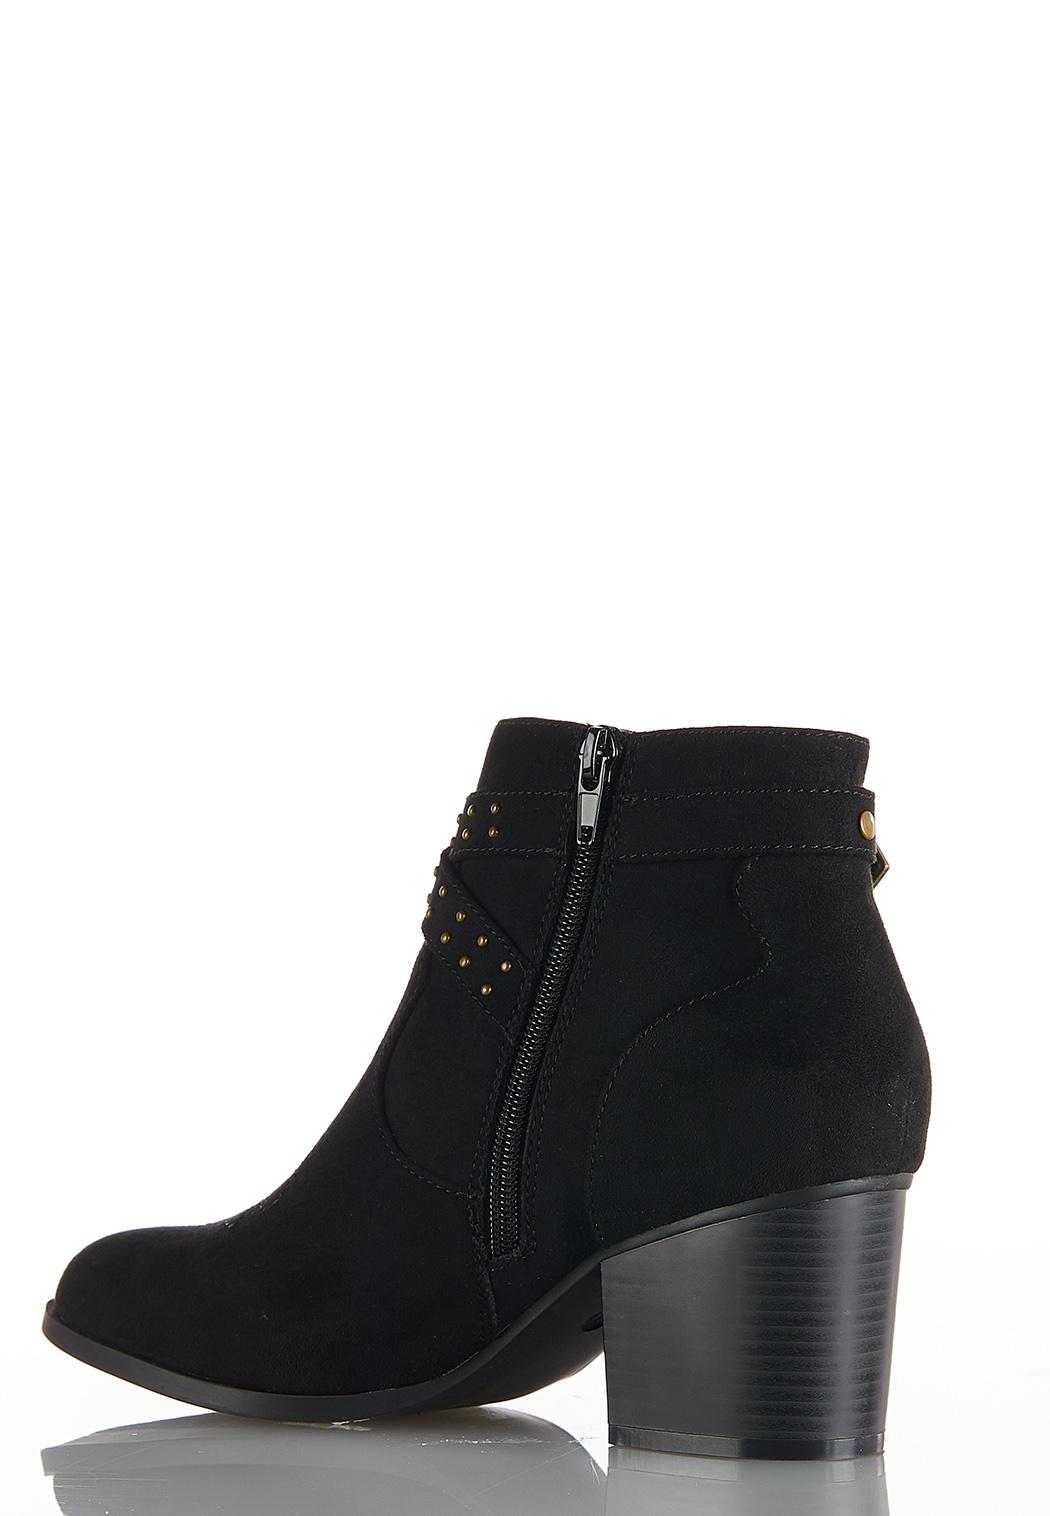 Western Buckle Ankle Boots (Item #44030896)